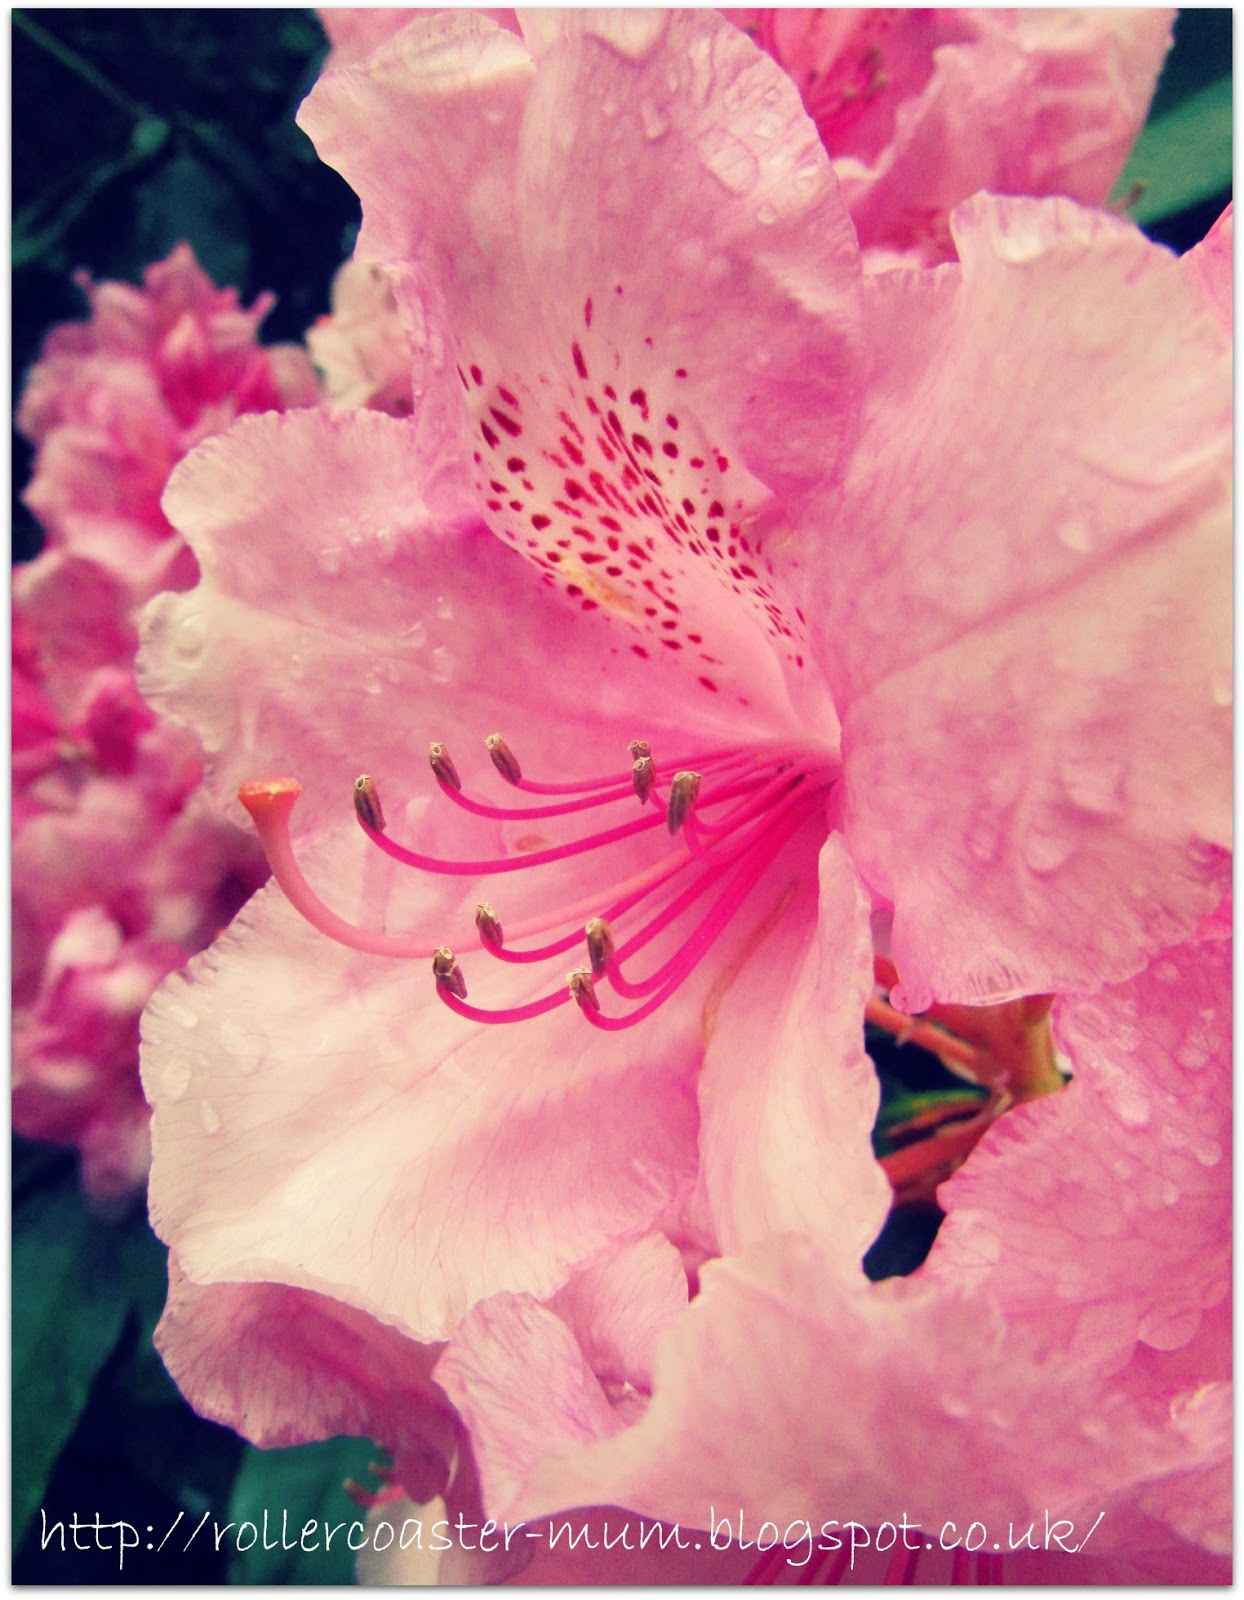 #alphabetphoto, F is for Flower, Rhododendron flower